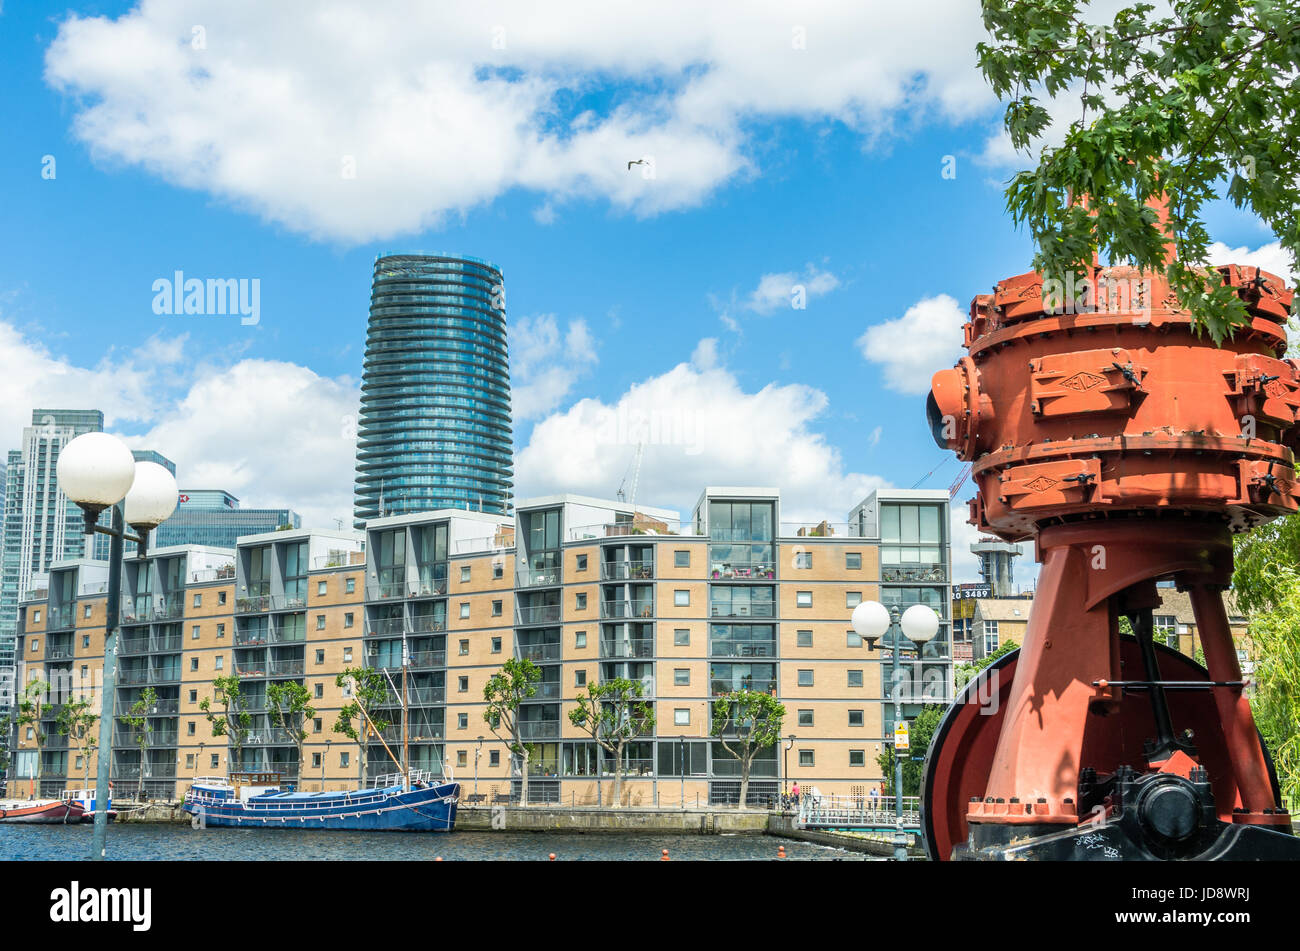 Millwall Outer Dock at the Isle of Dogs, London Docklands - Stock Image